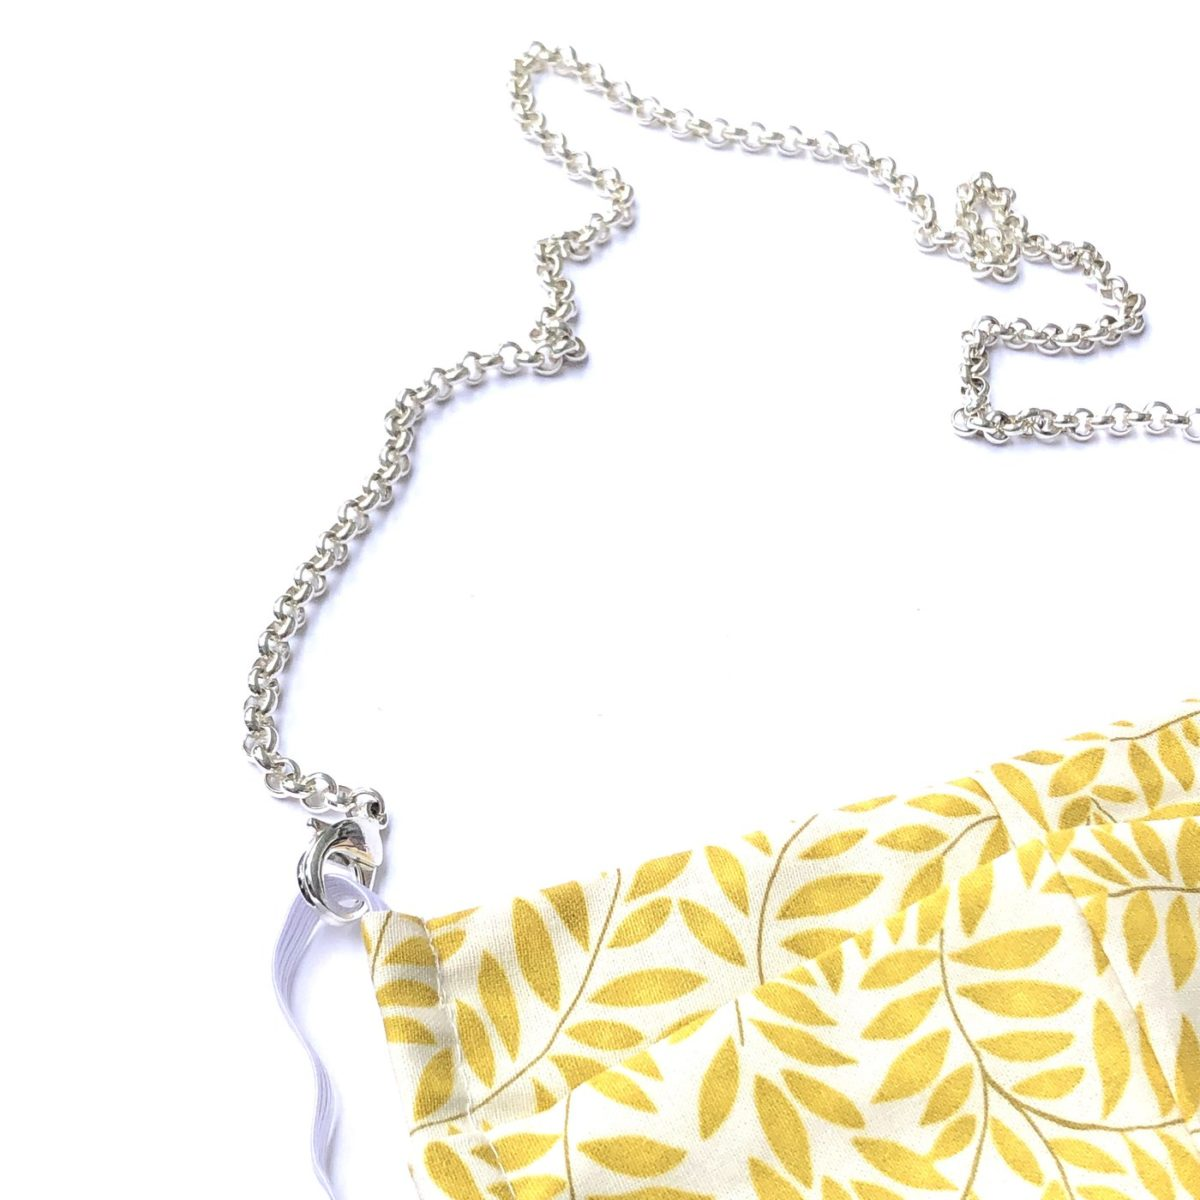 La Mask by Laloop Silver Plated Rolo Chain Necklace Chain for Facemasks